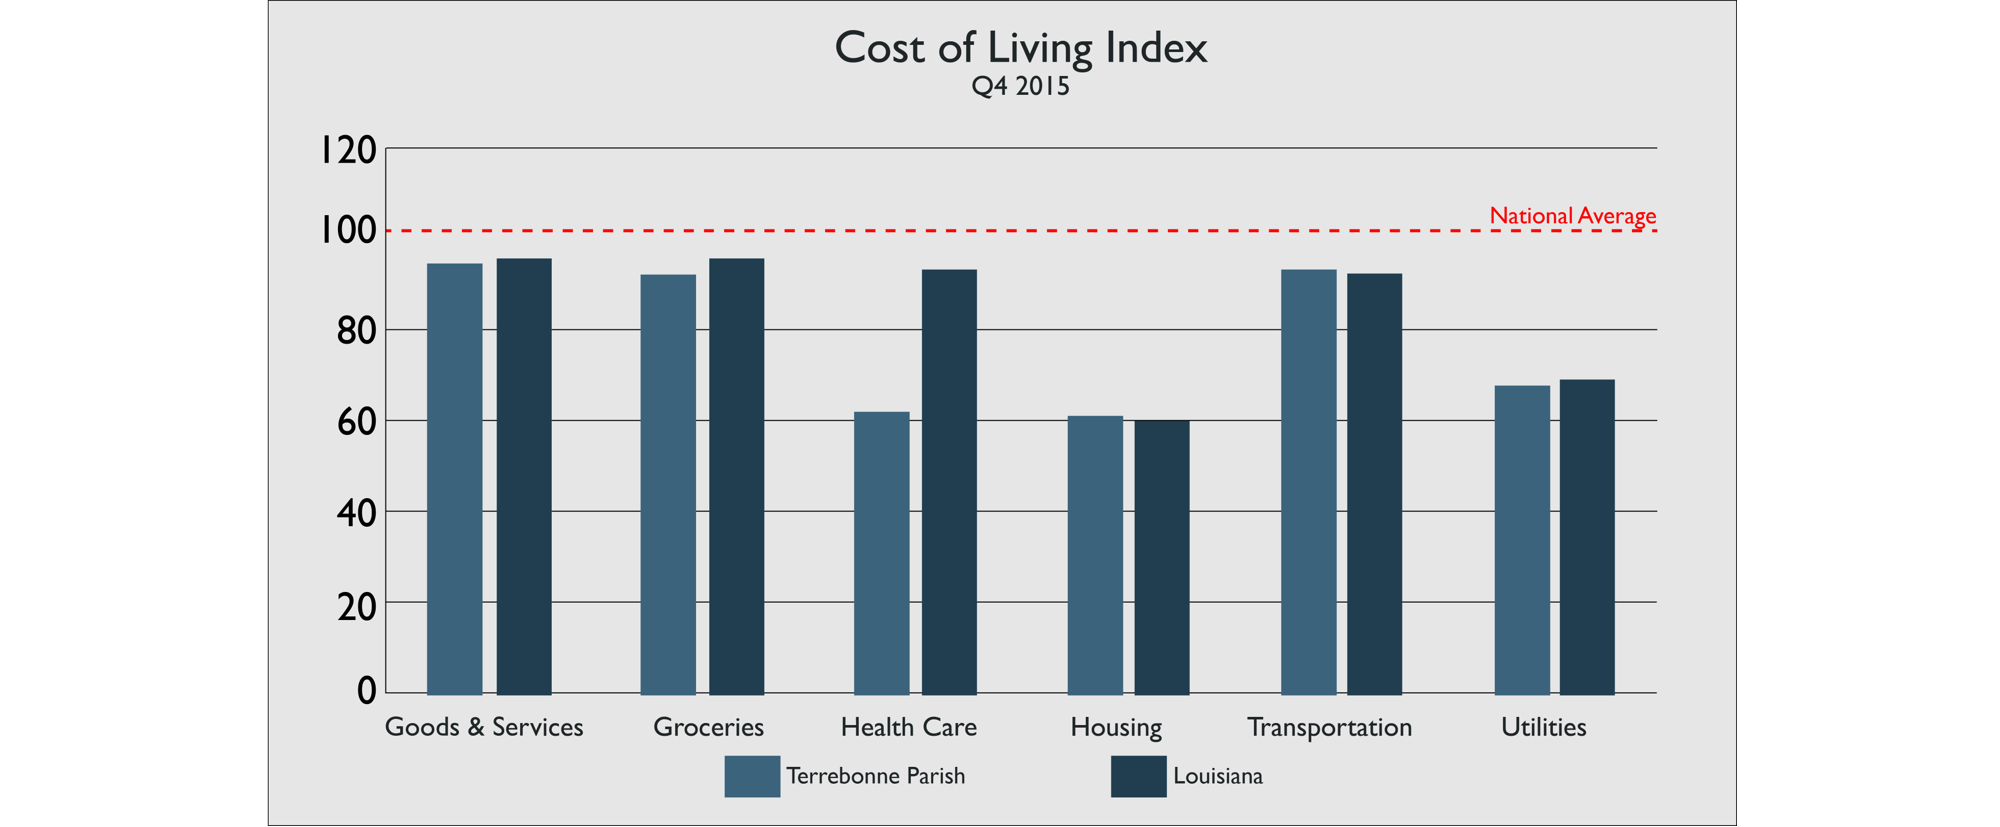 Terrebonne Parish residents enjoy a low cost of living with relatively high wages. With household income almost $48,000 and a cost of living less than the national average, Terrebonne Parish makes your hard earned money go further than many places in the US. To this point, when adjusted for household income, Terrebonne Parish moves up 20 spots in the county rankings.